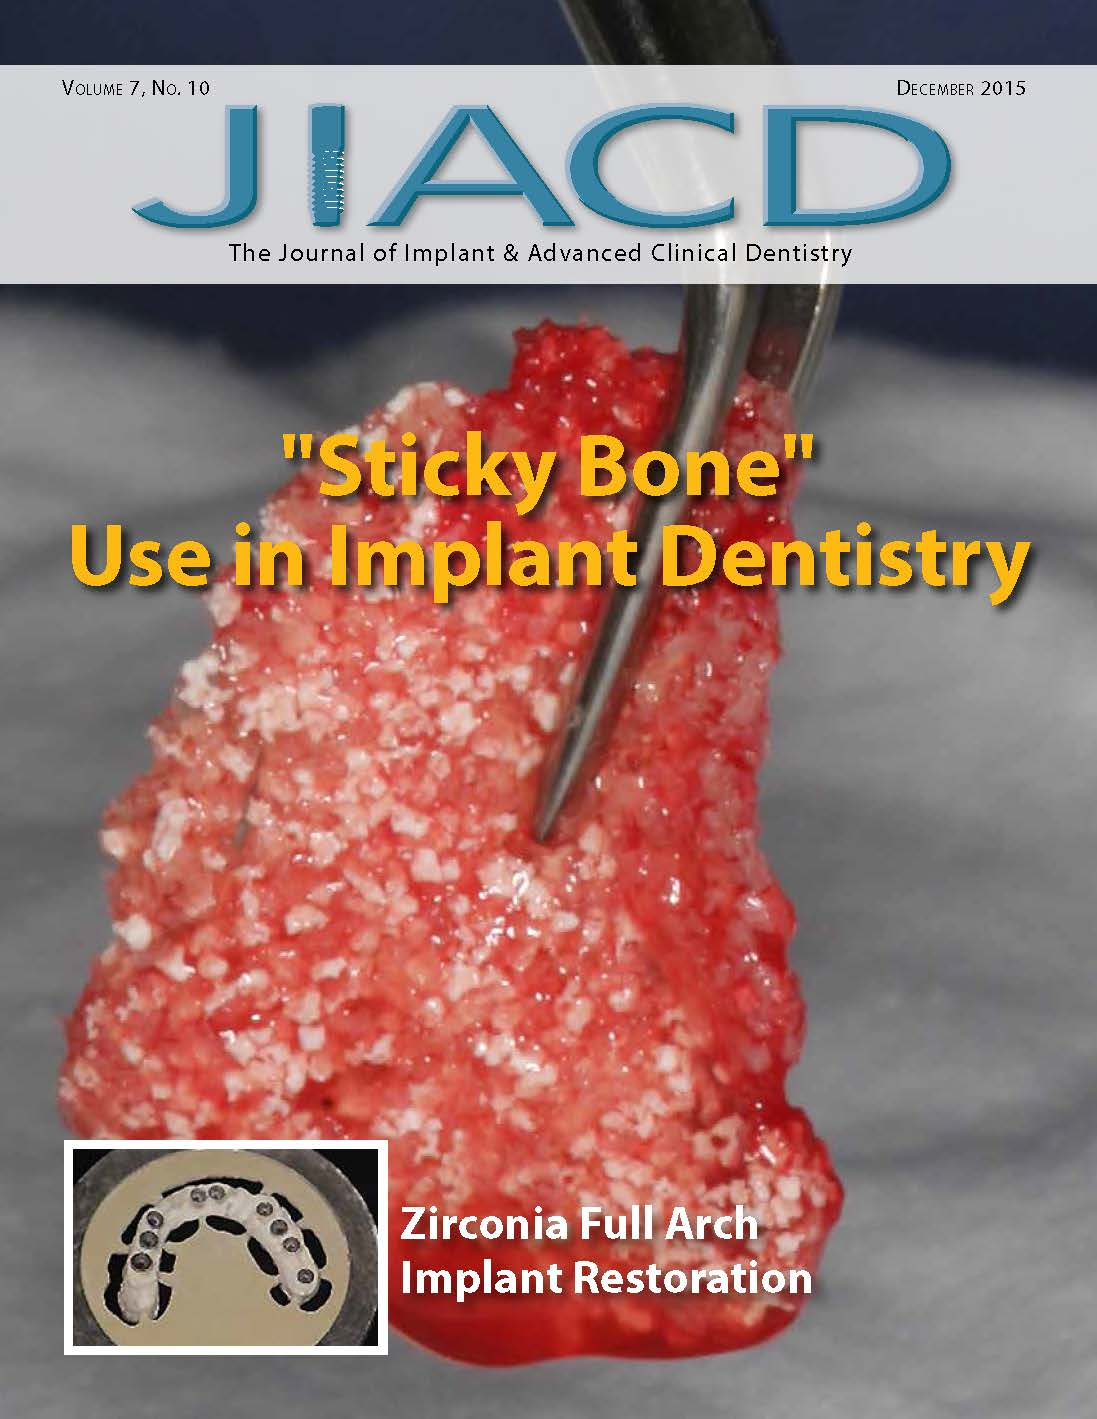 Sticky Bone Use in Implant Dentistry